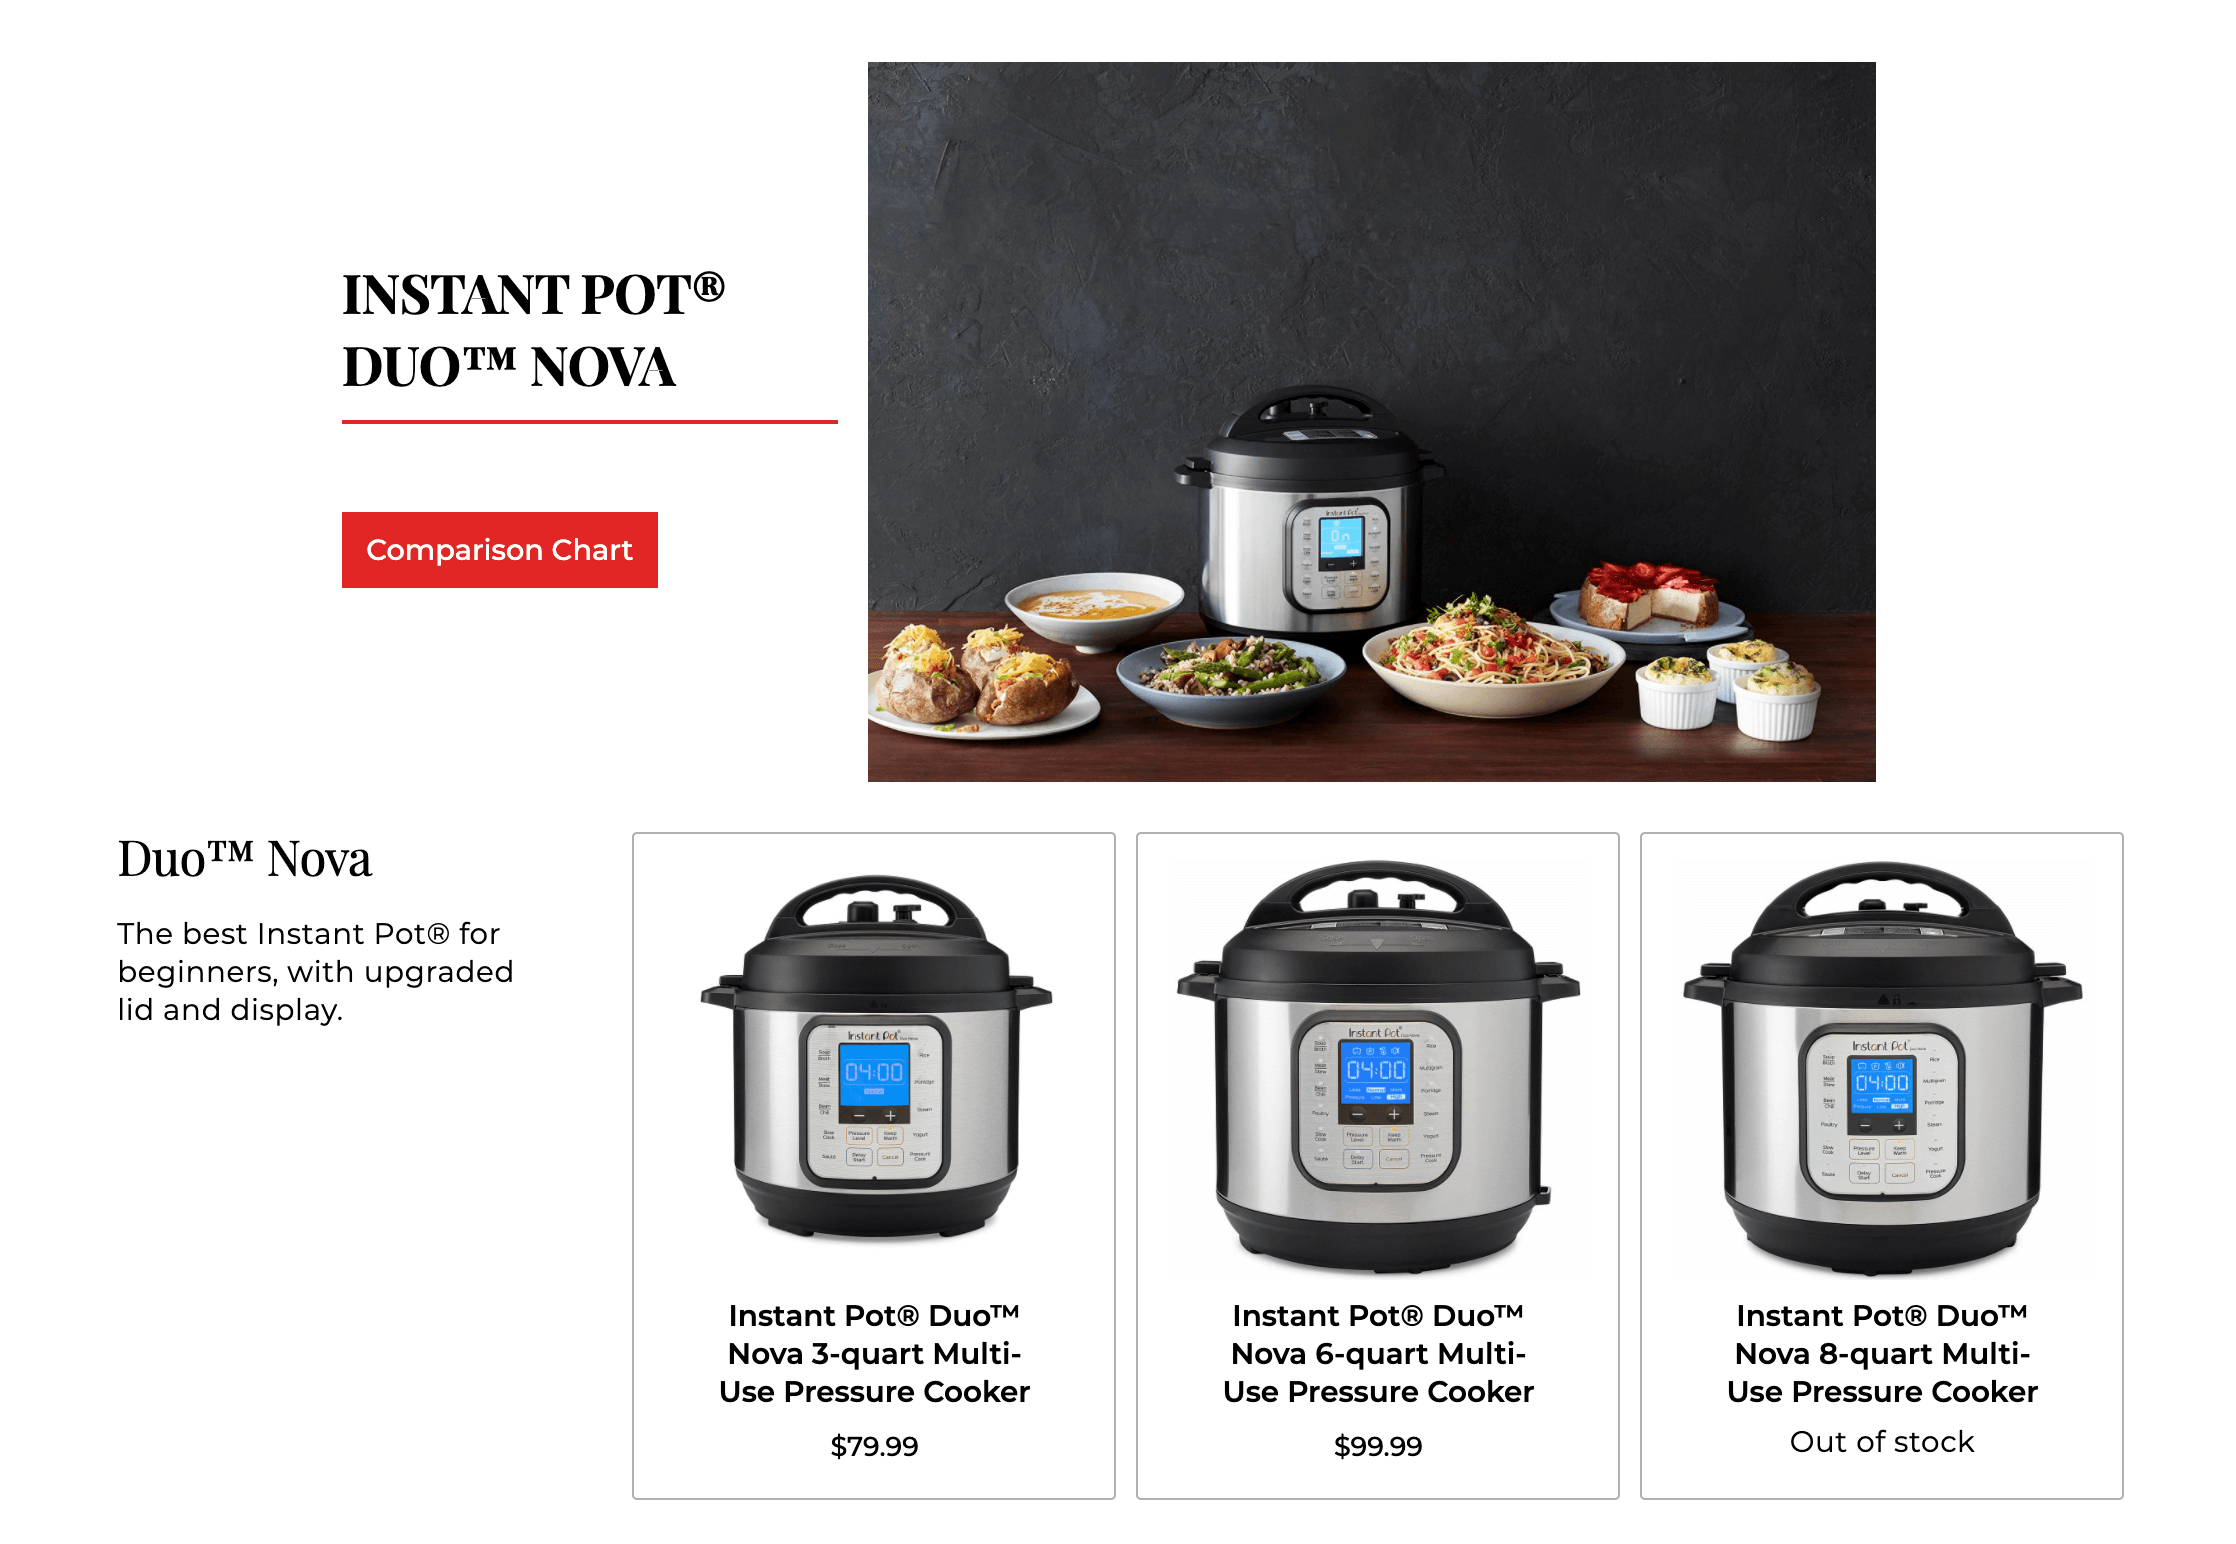 An example of Instant Pot product variations at different prices.